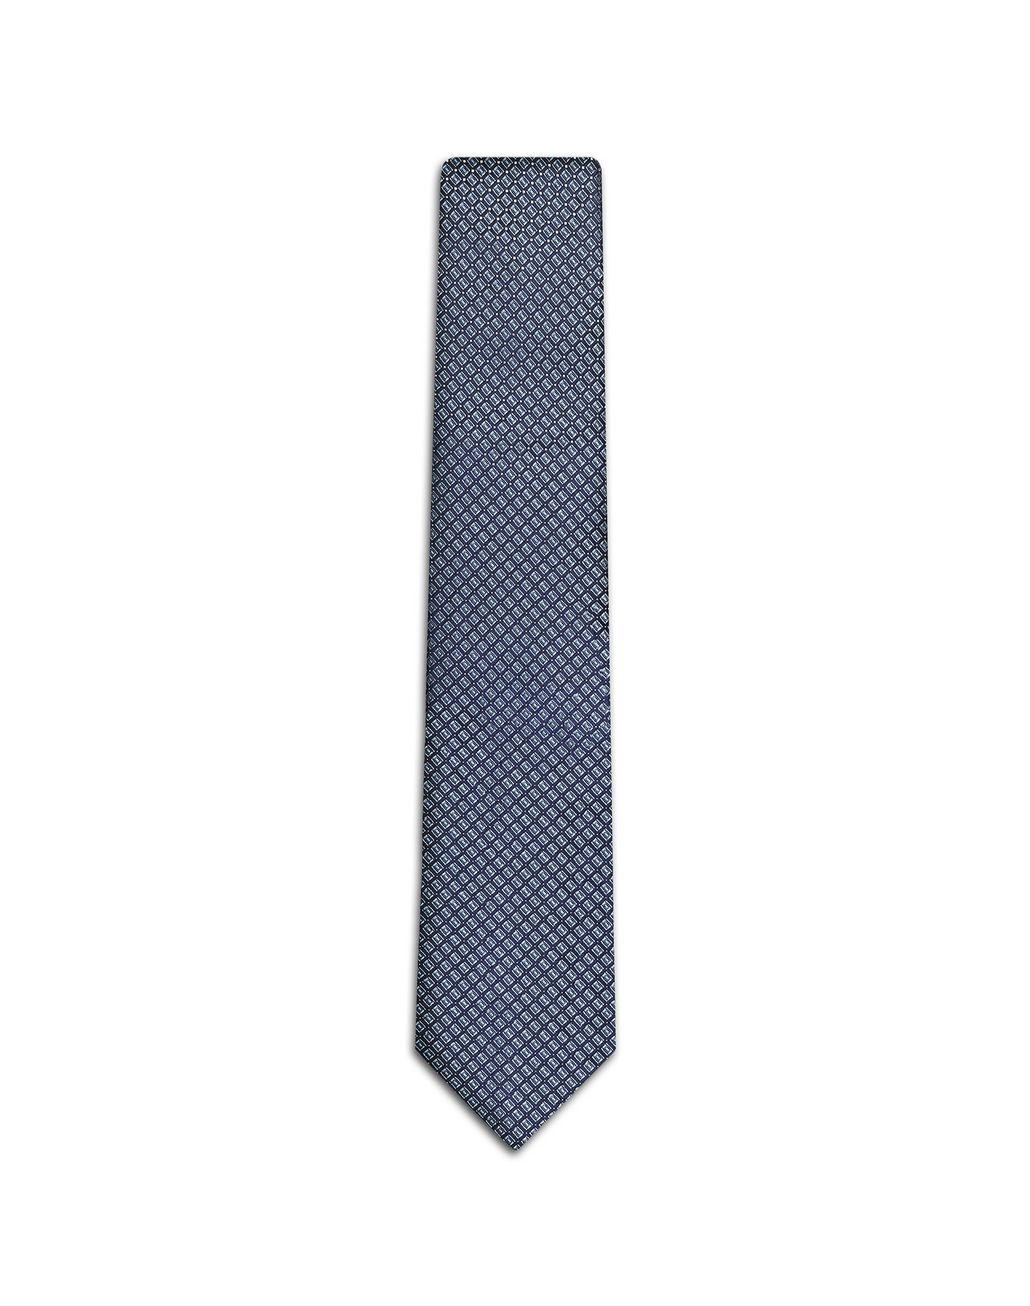 BRIONI Navy Blue and Bluette Designed Tie Tie Man f